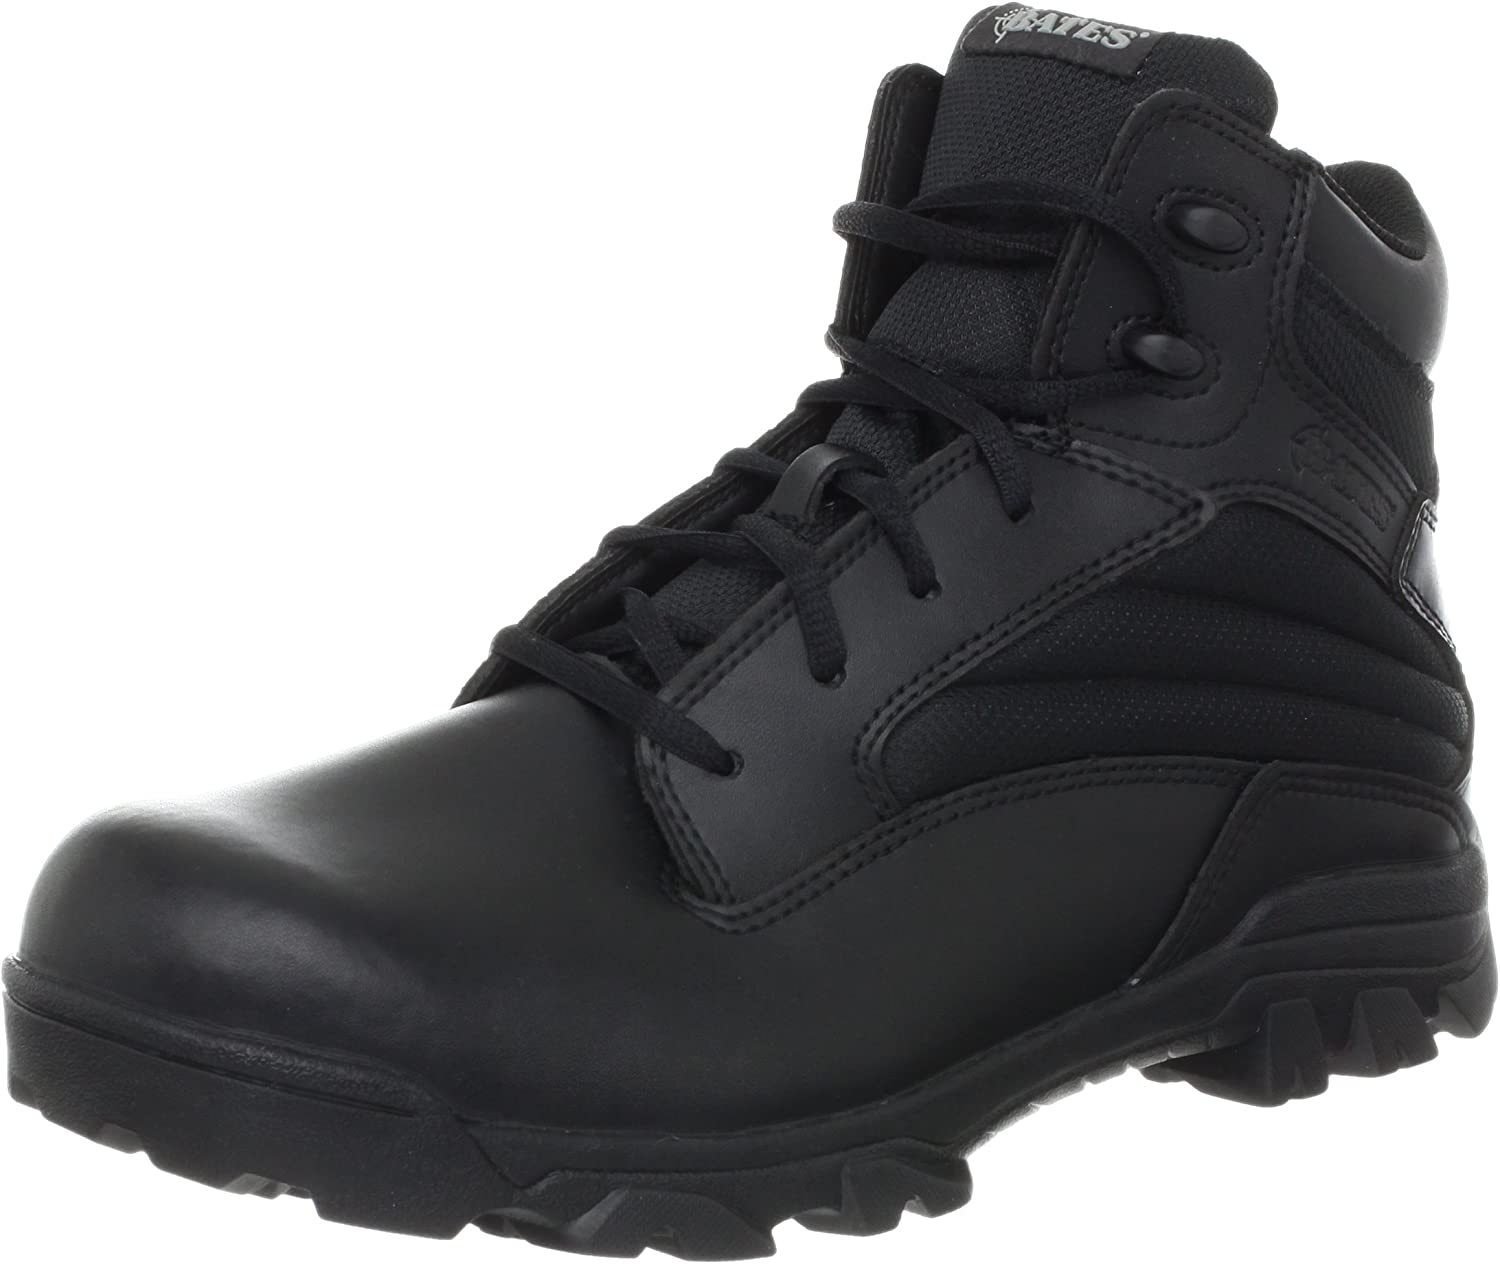 Bates Men's ZR-6 BLK 6 Leather Inch Nylon All items Financial sales sale in the store Uniform Boot